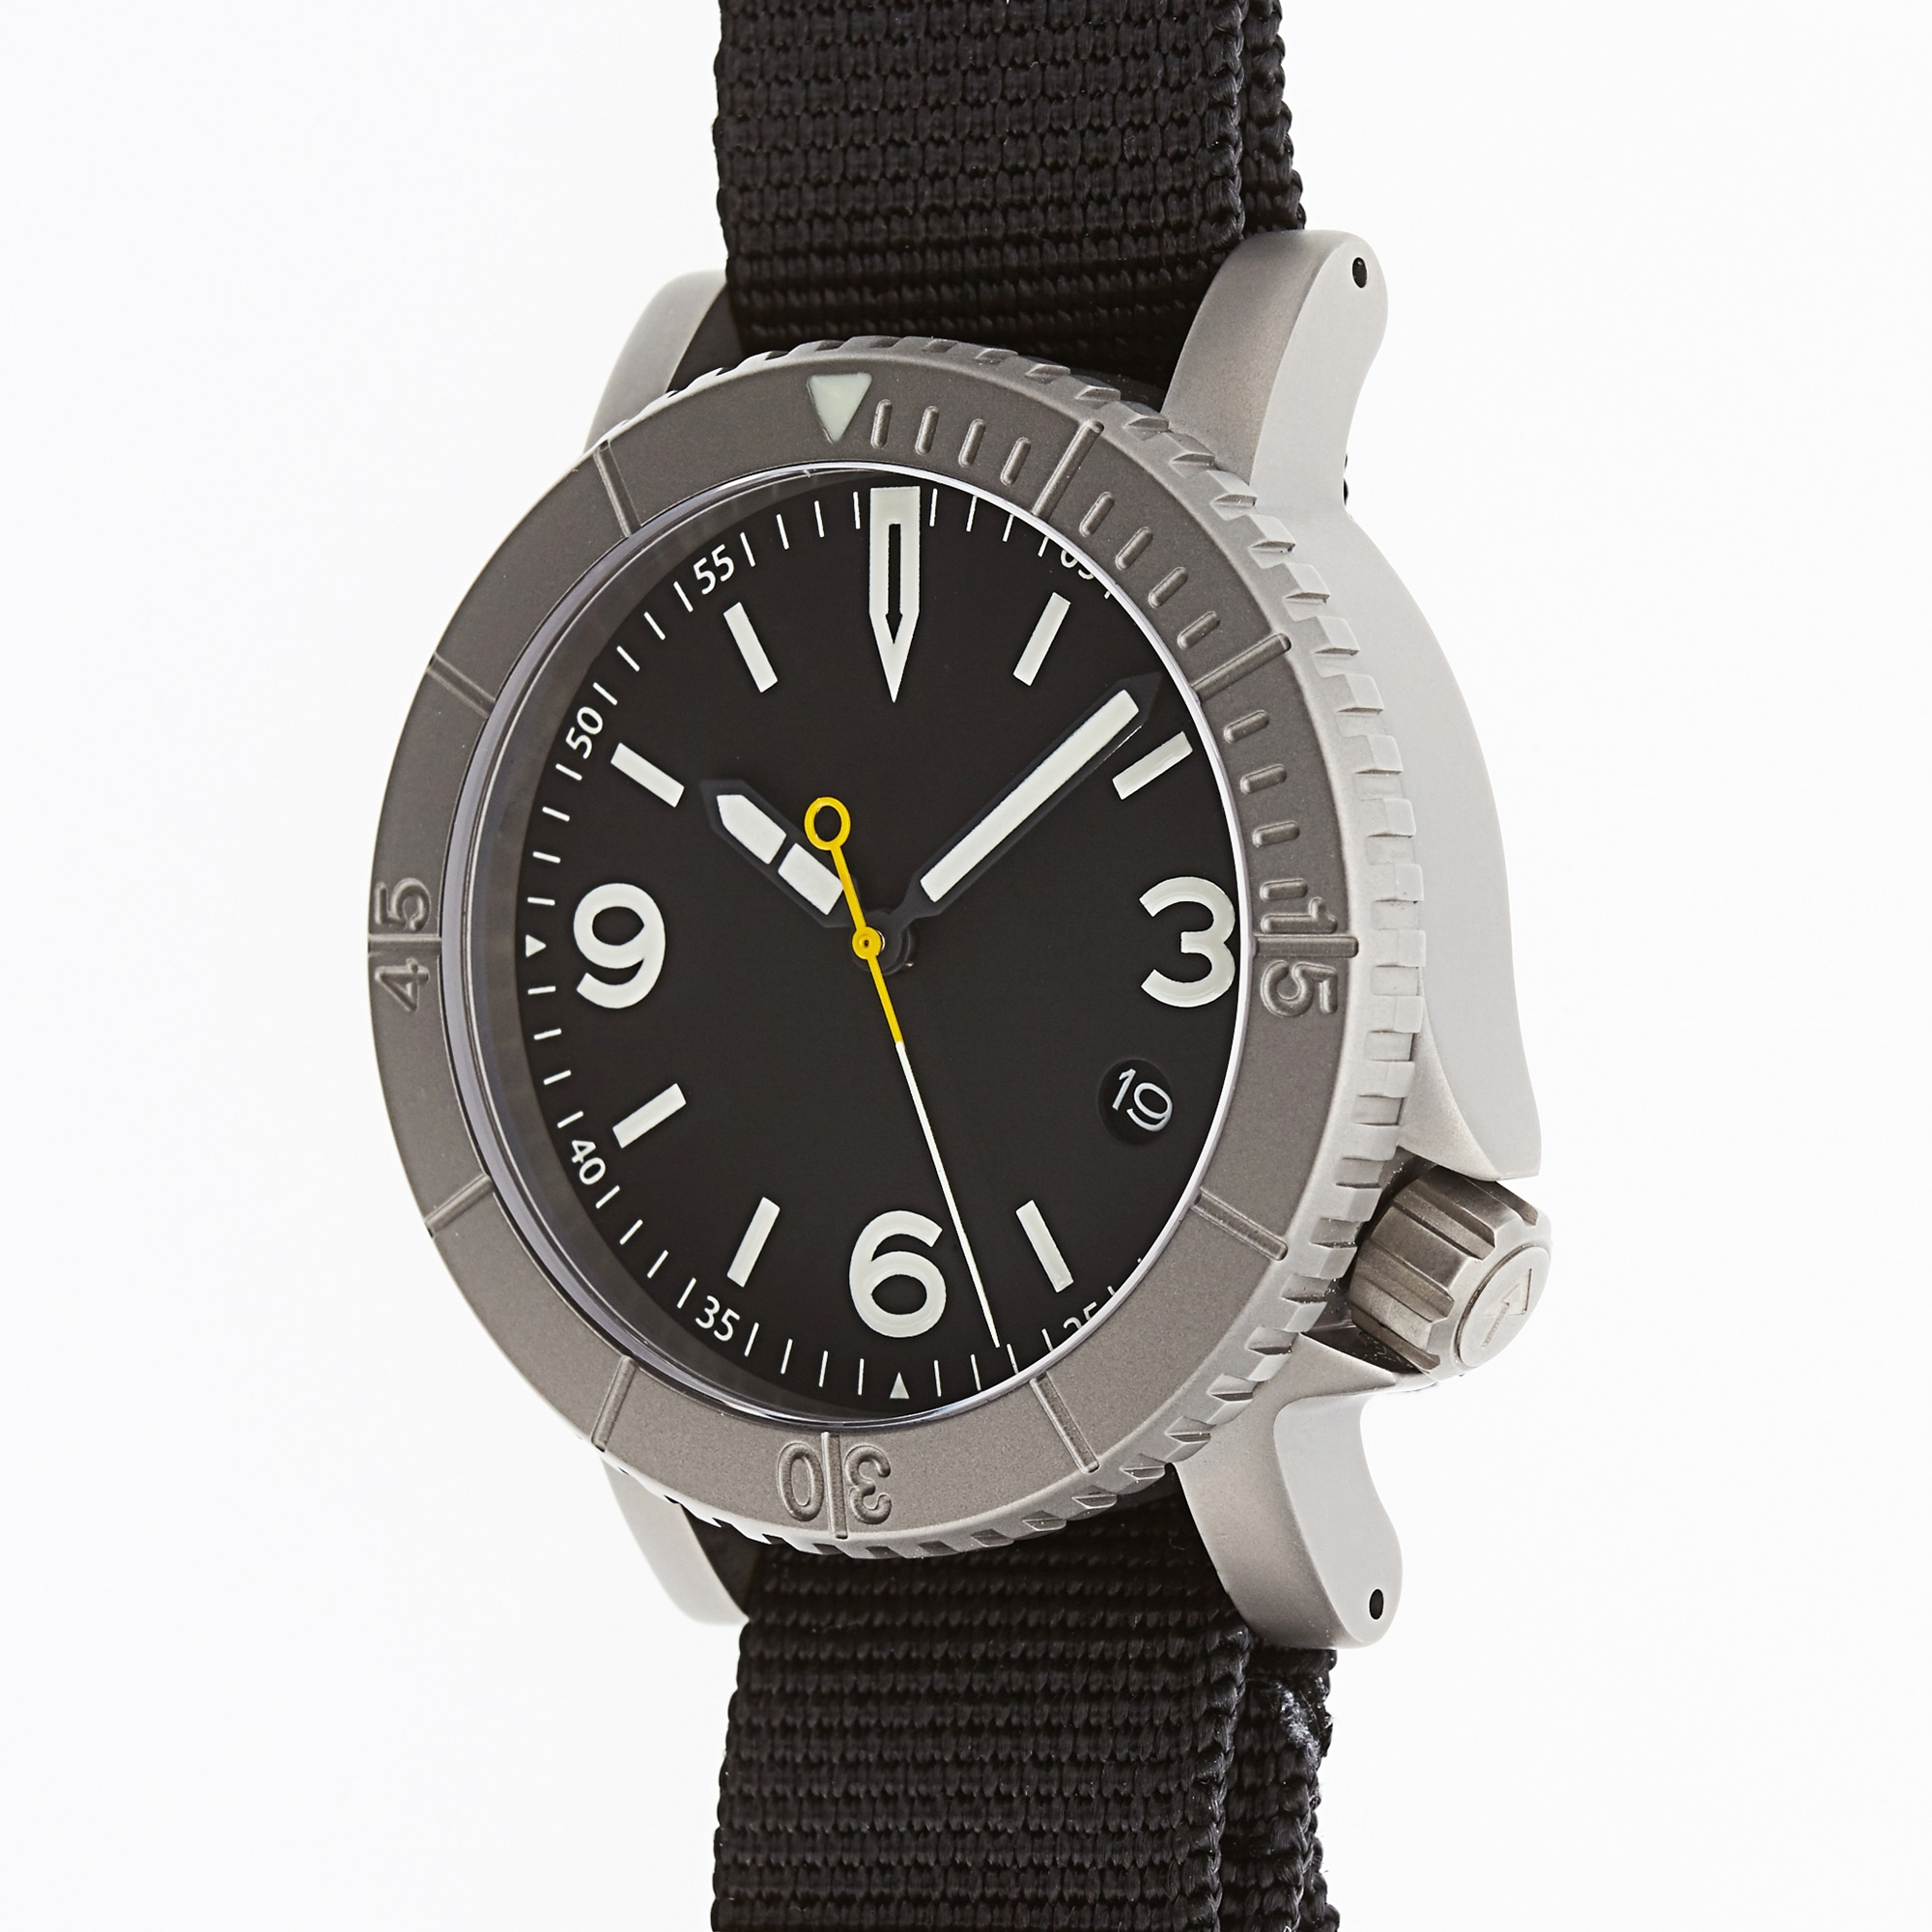 online contests, sweepstakes and giveaways - Win a Redux & Co. Titanium Pilot-Diver Watch and More